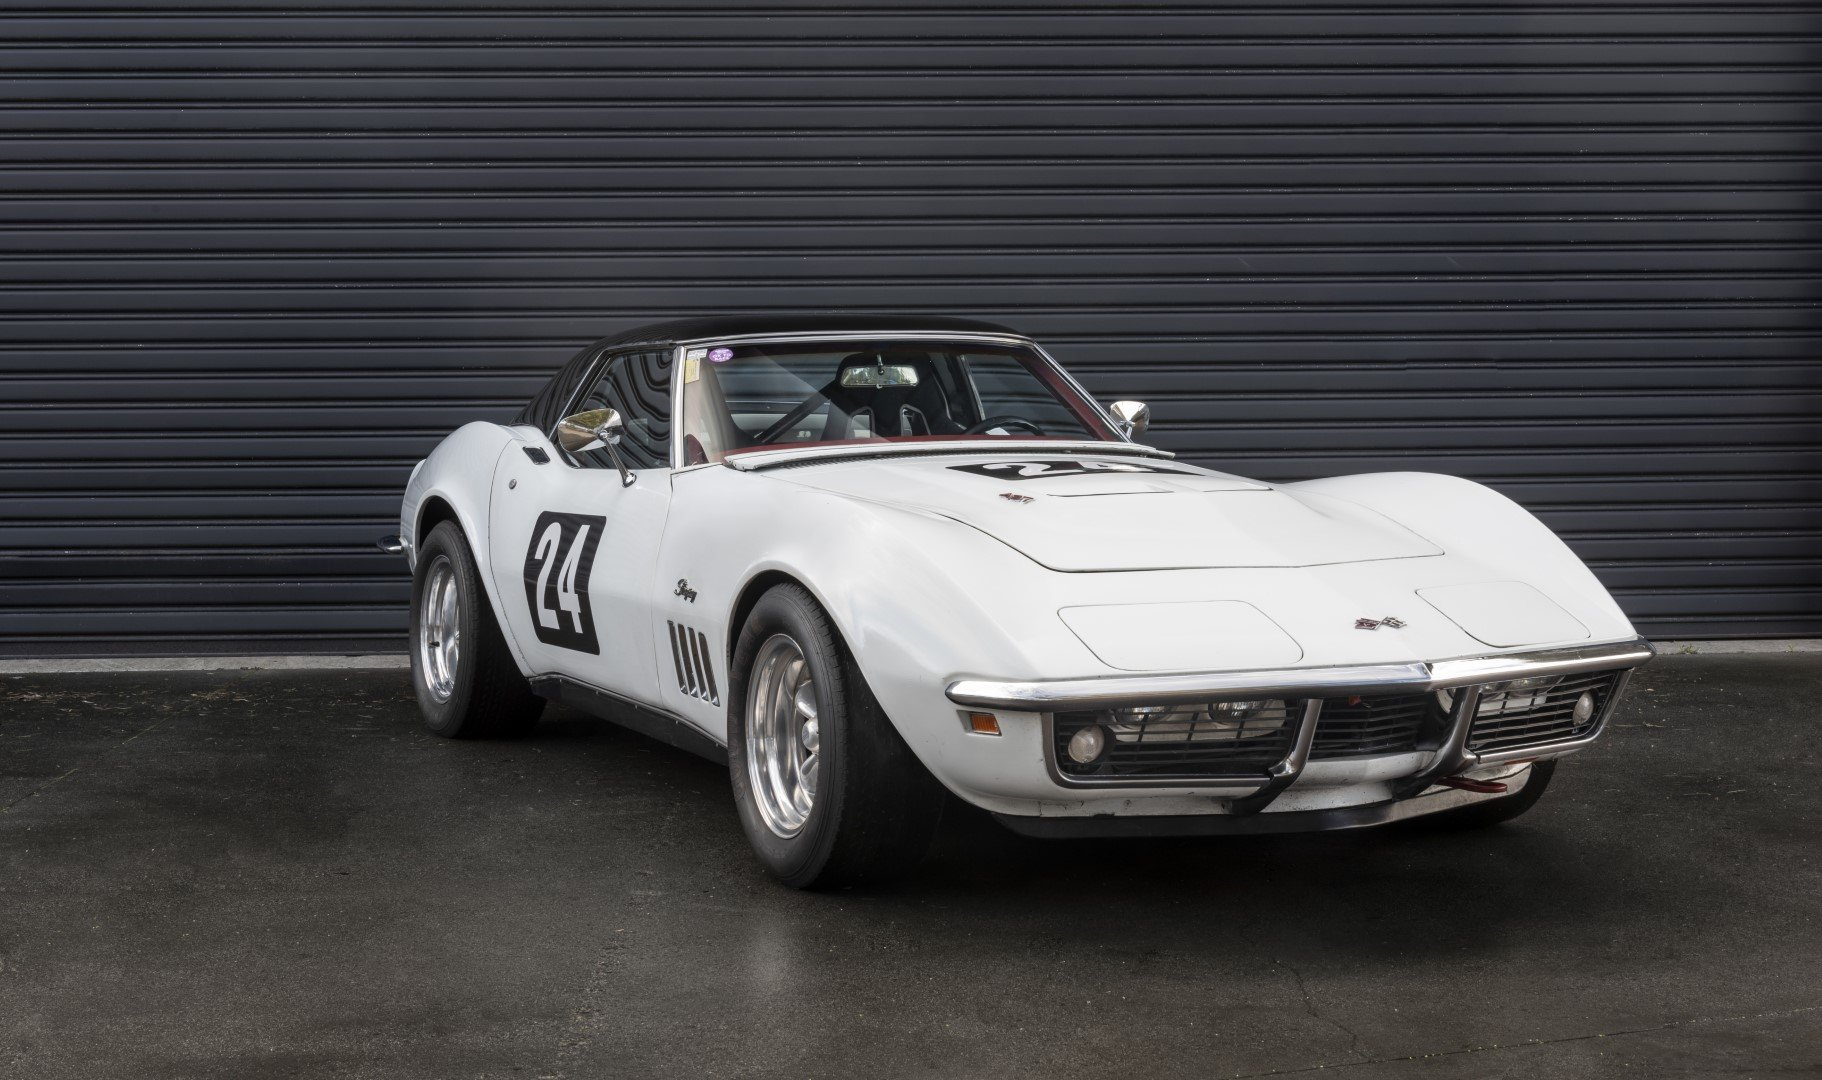 1969 CHEVROLET CORVETTE 427 'BIG BLOCK' ROADSTER W/ HARDTOP For Sale by Auction (picture 1 of 6)